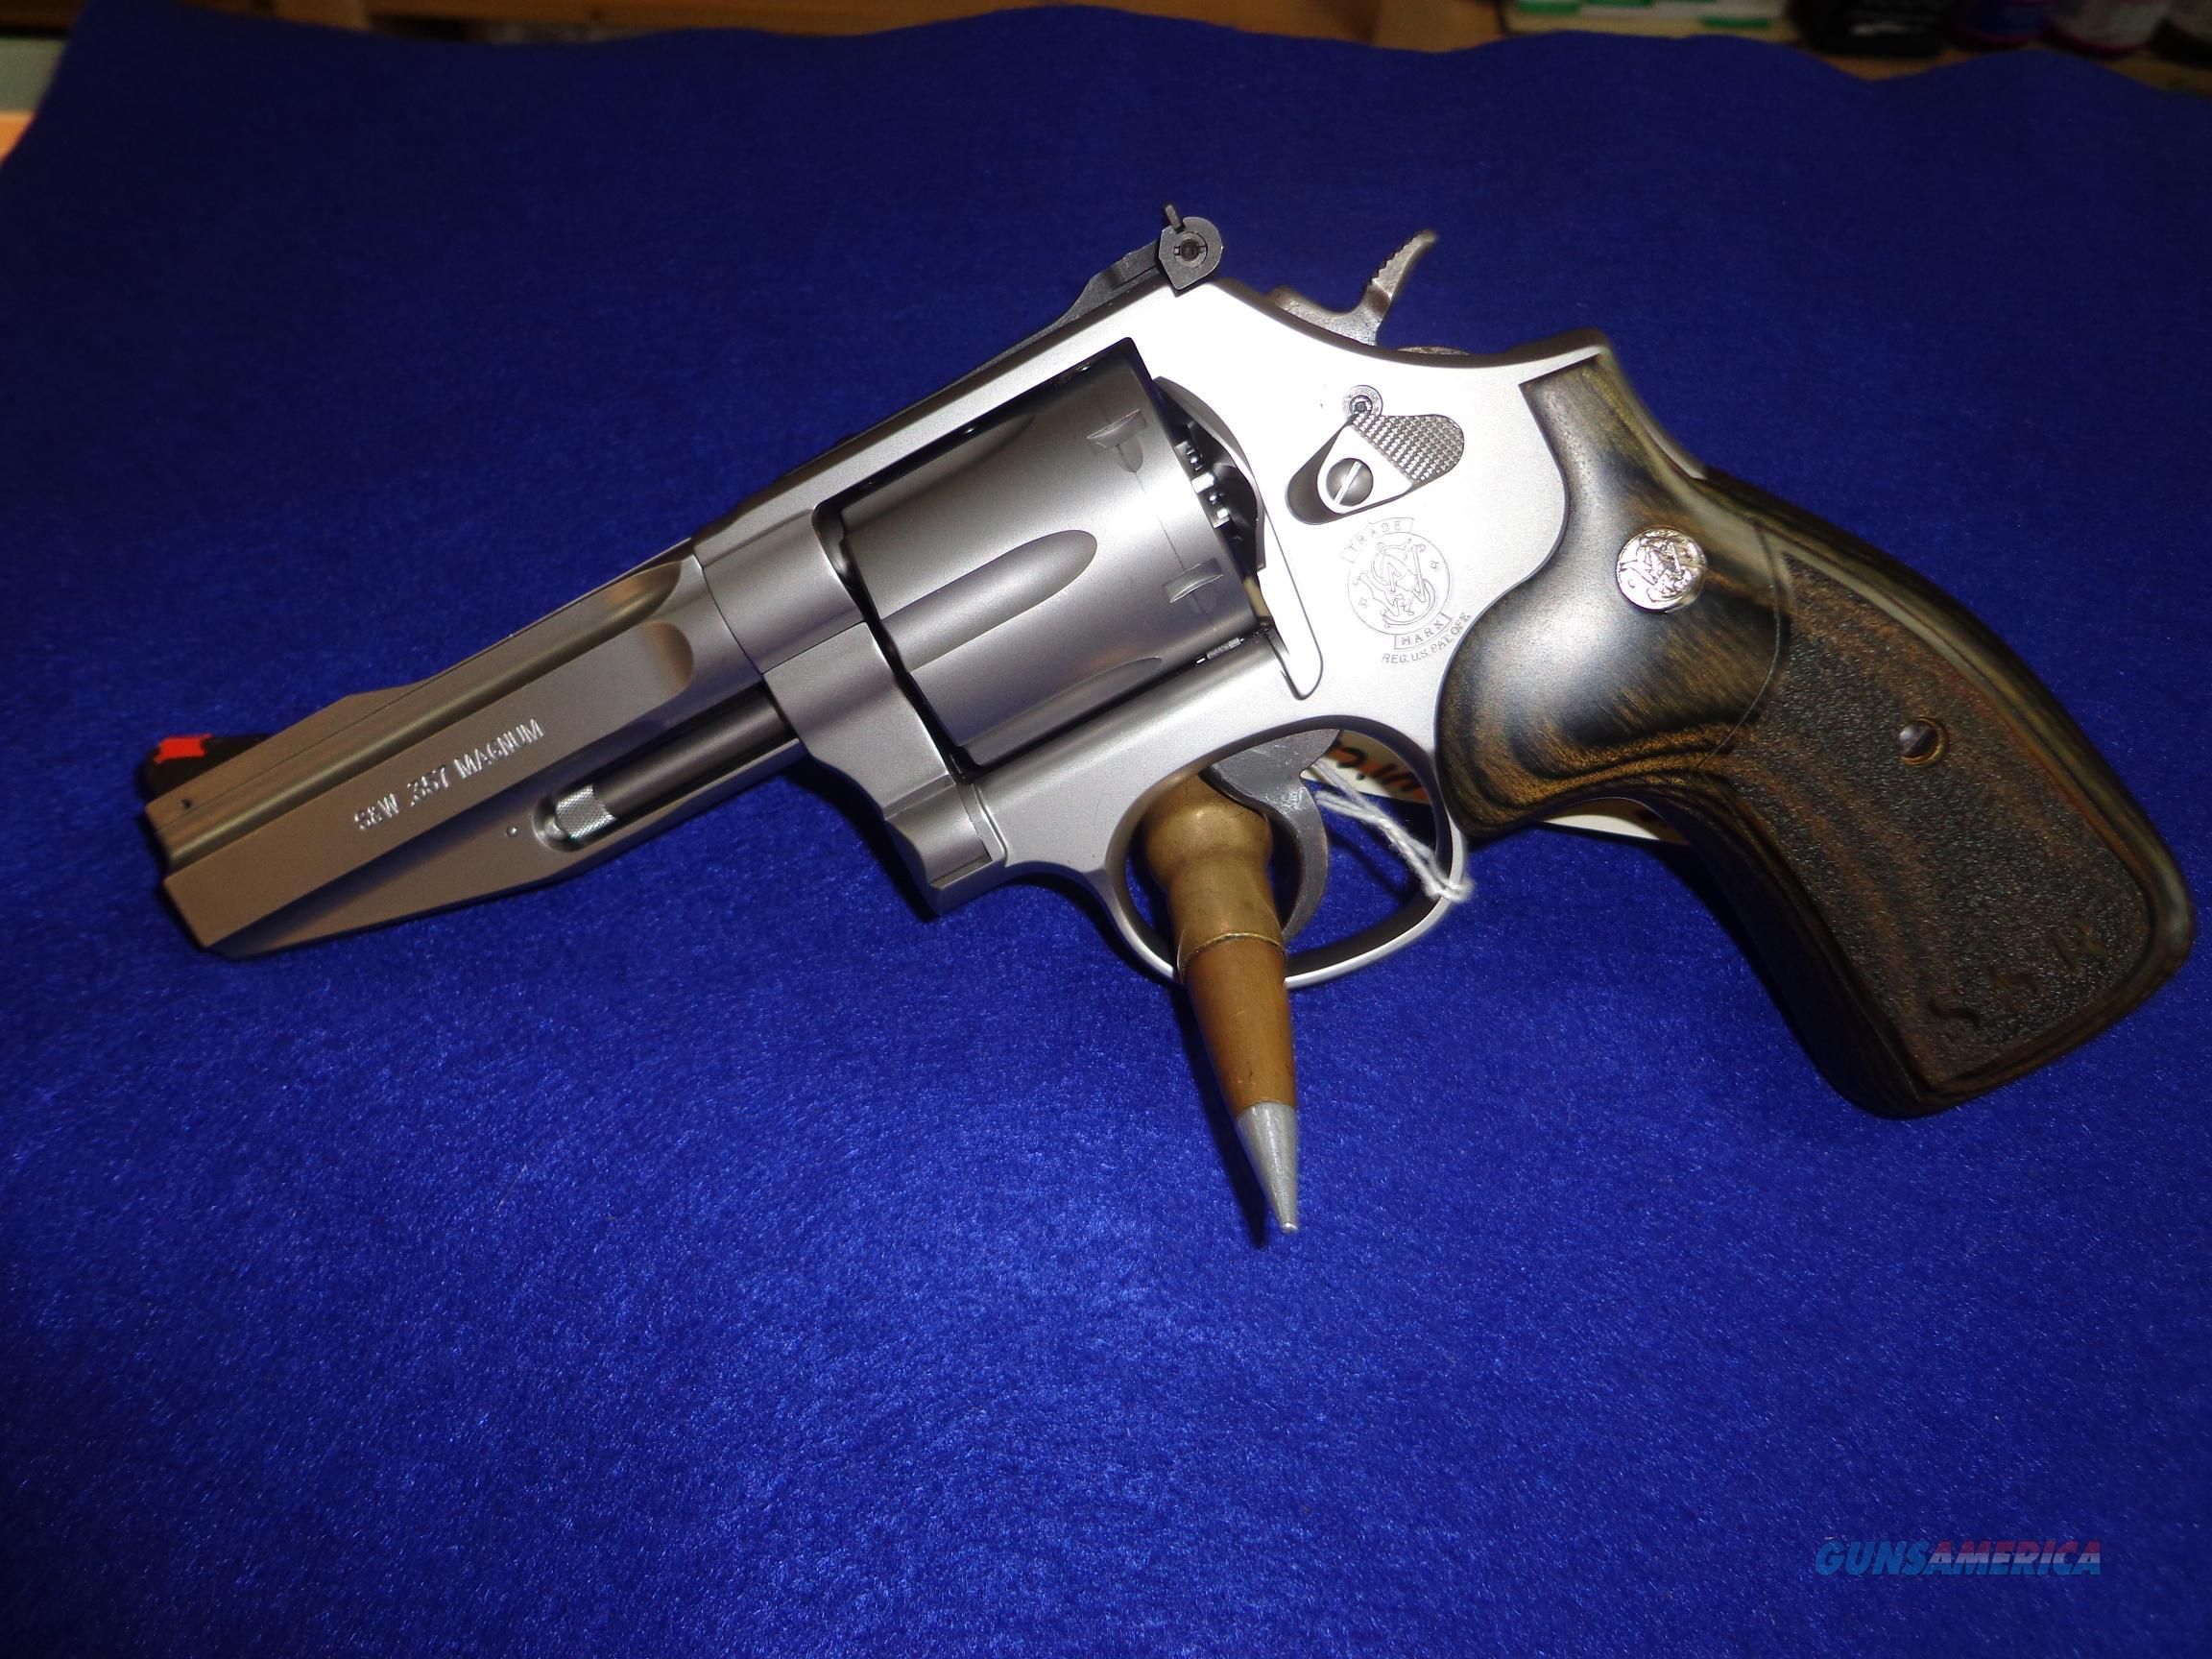 SMITH AND WESSON MODEL 686-6 PRO SERIES 357 MAG  Guns > Pistols > Smith & Wesson Revolvers > Full Frame Revolver